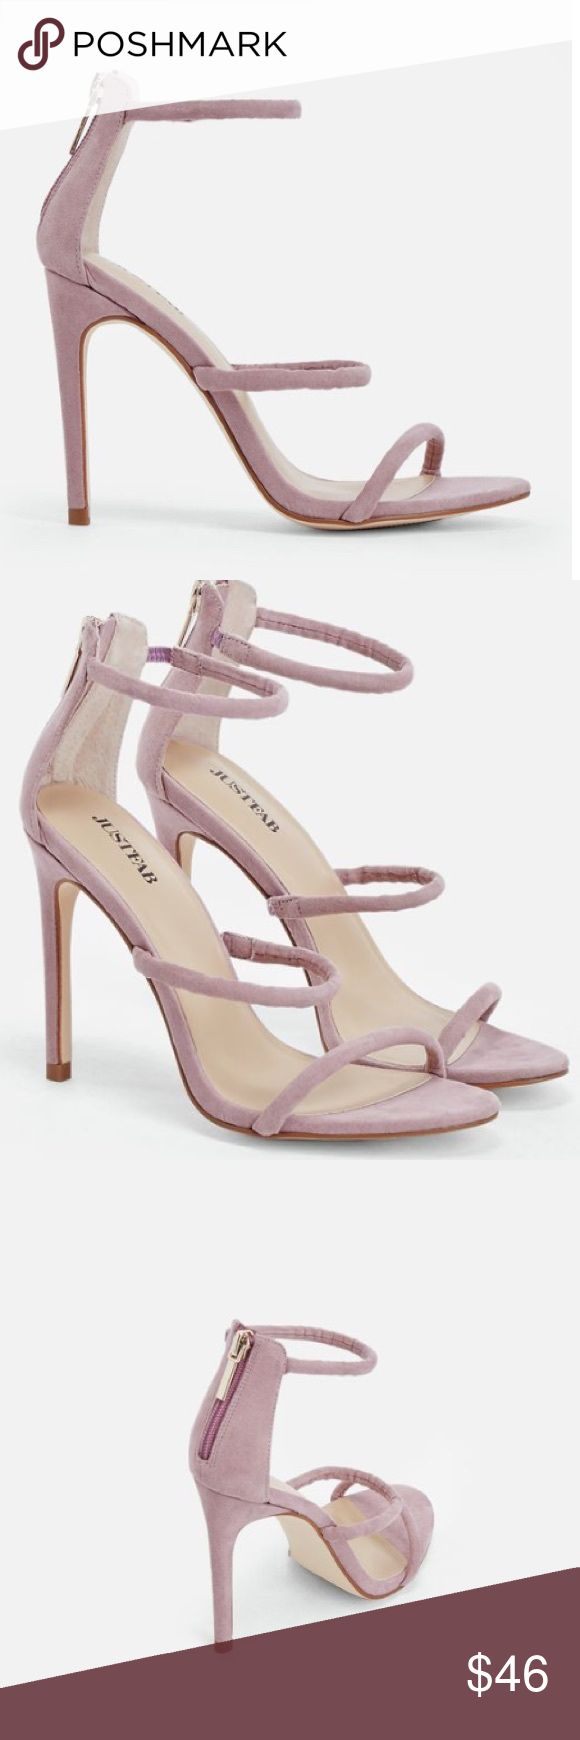 """LILAC STRAPY SANDAL HEELS Make a statement in these 3-strap metallic heels featuring a back zip closure.                                                 Approx. Heel Height: 4.0"""" Synthetic Upper Man Made Sole Imported Public Desire  Shoes Heels"""